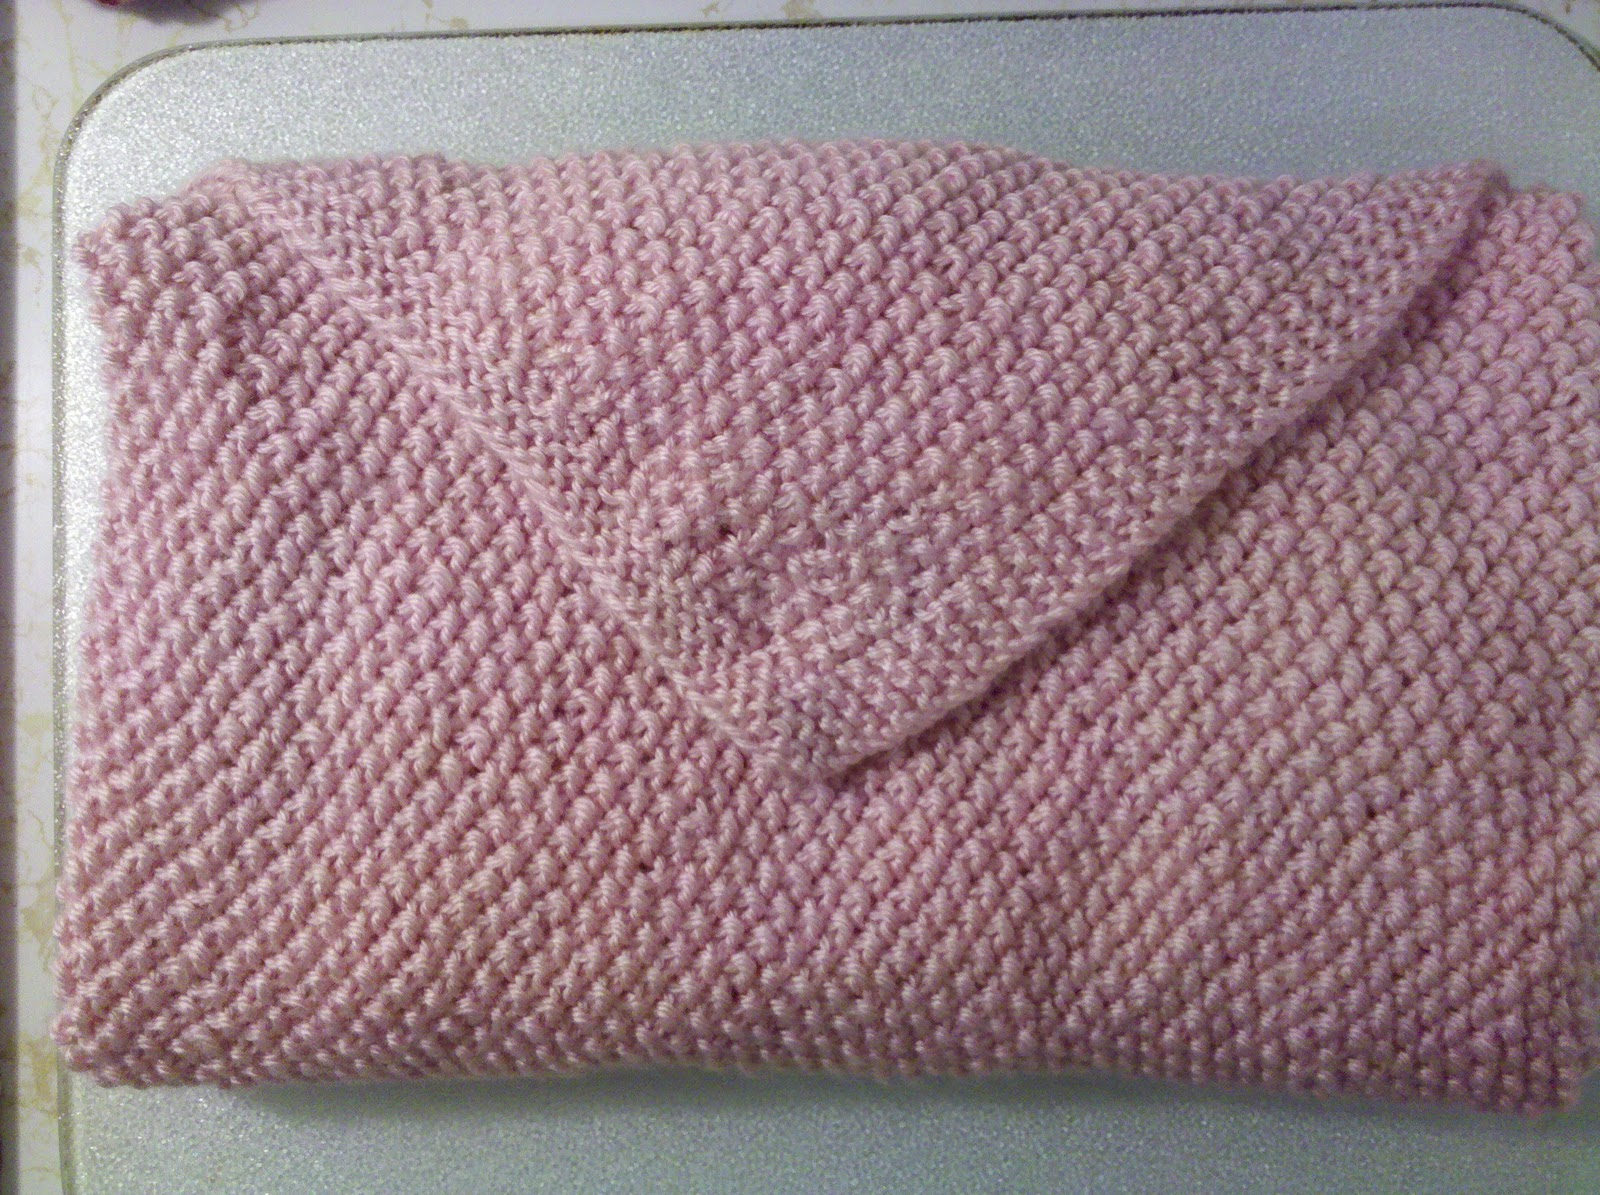 Boston Handmade: My next knitting project- a baby blanket ...